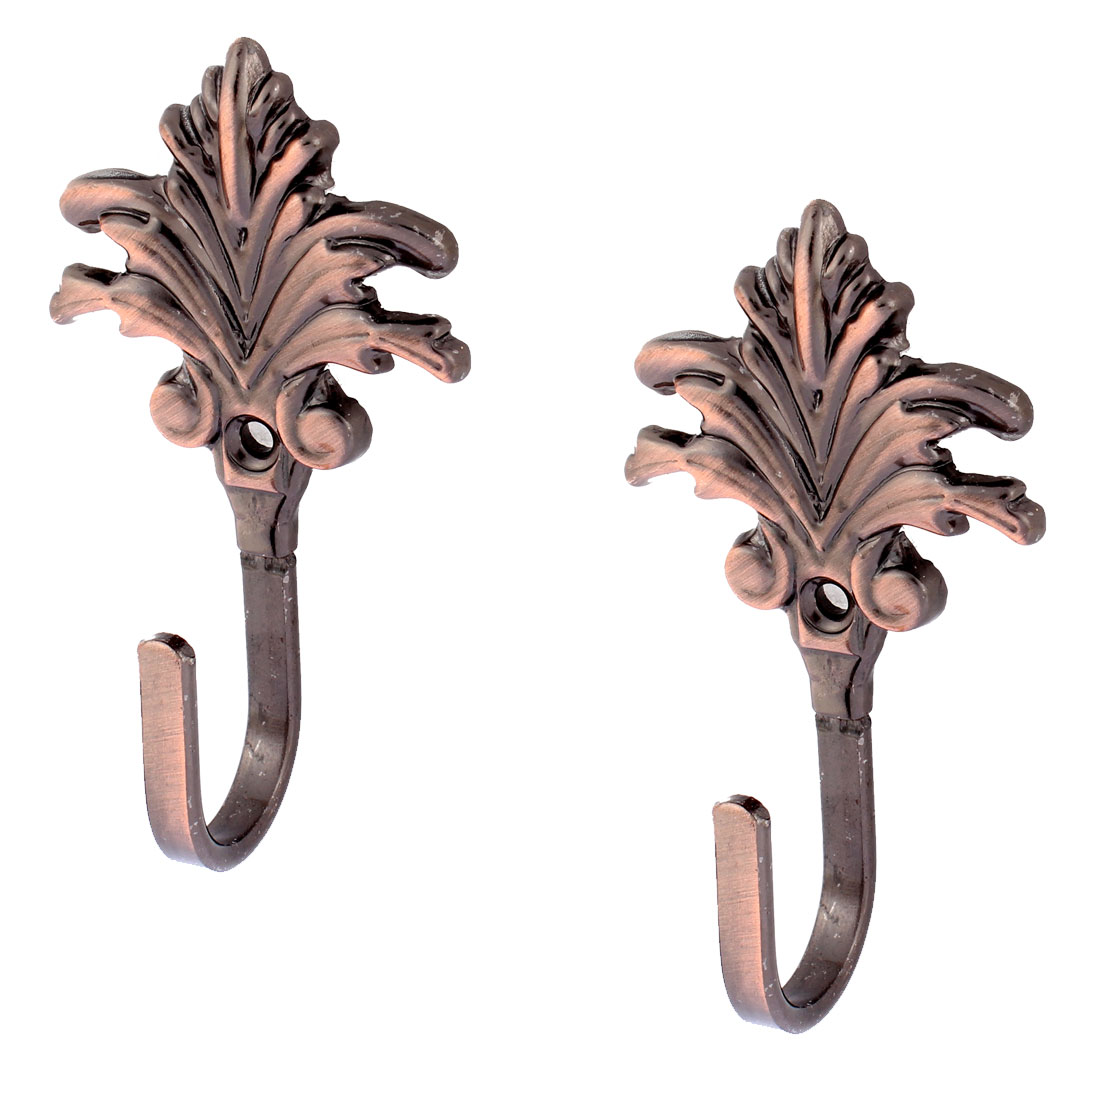 Bedroom Screw Mount Curtain Tieback Wall Hooks Copper Tone 2Pcs